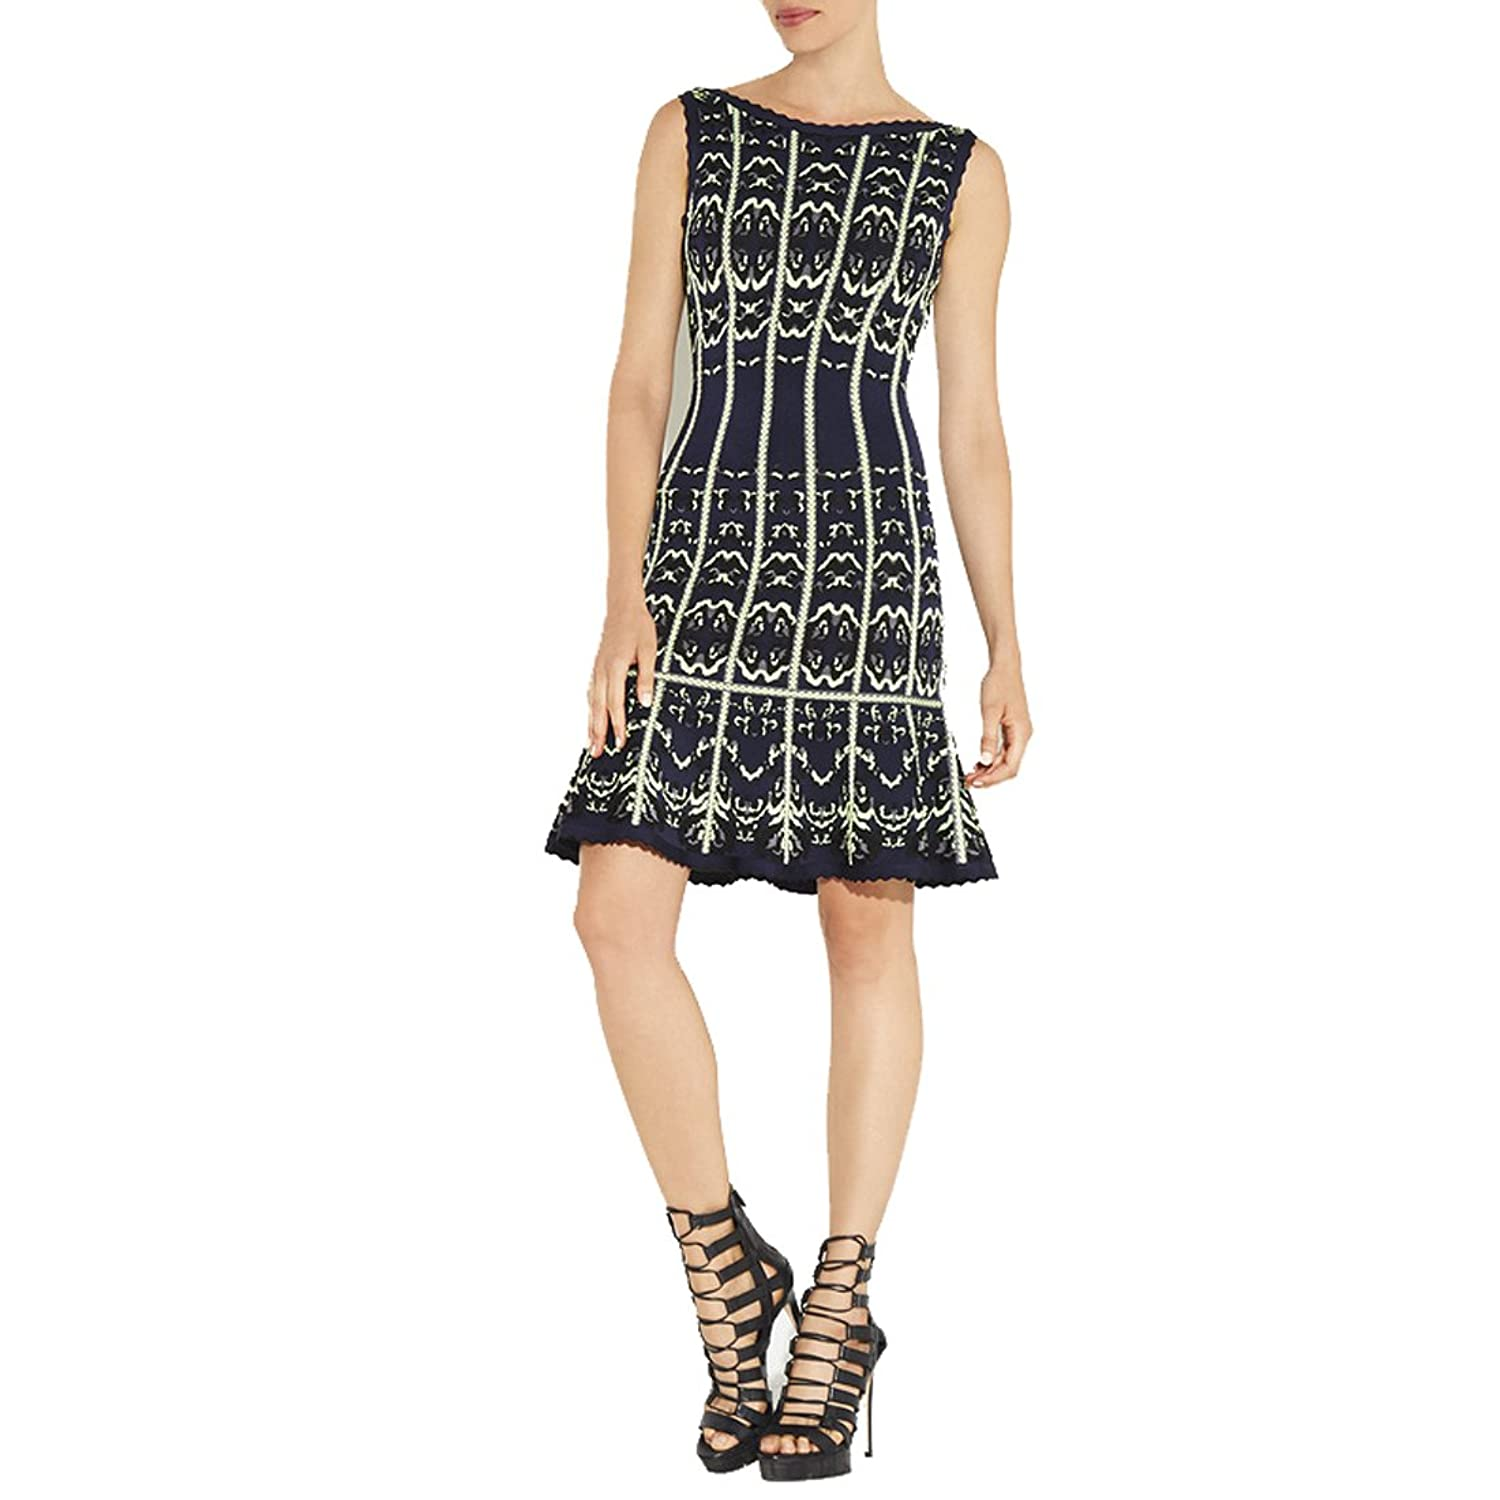 Hlbcbg Rayon Women's Bandage Bodycon Dress Cocktail Party Dress 2395